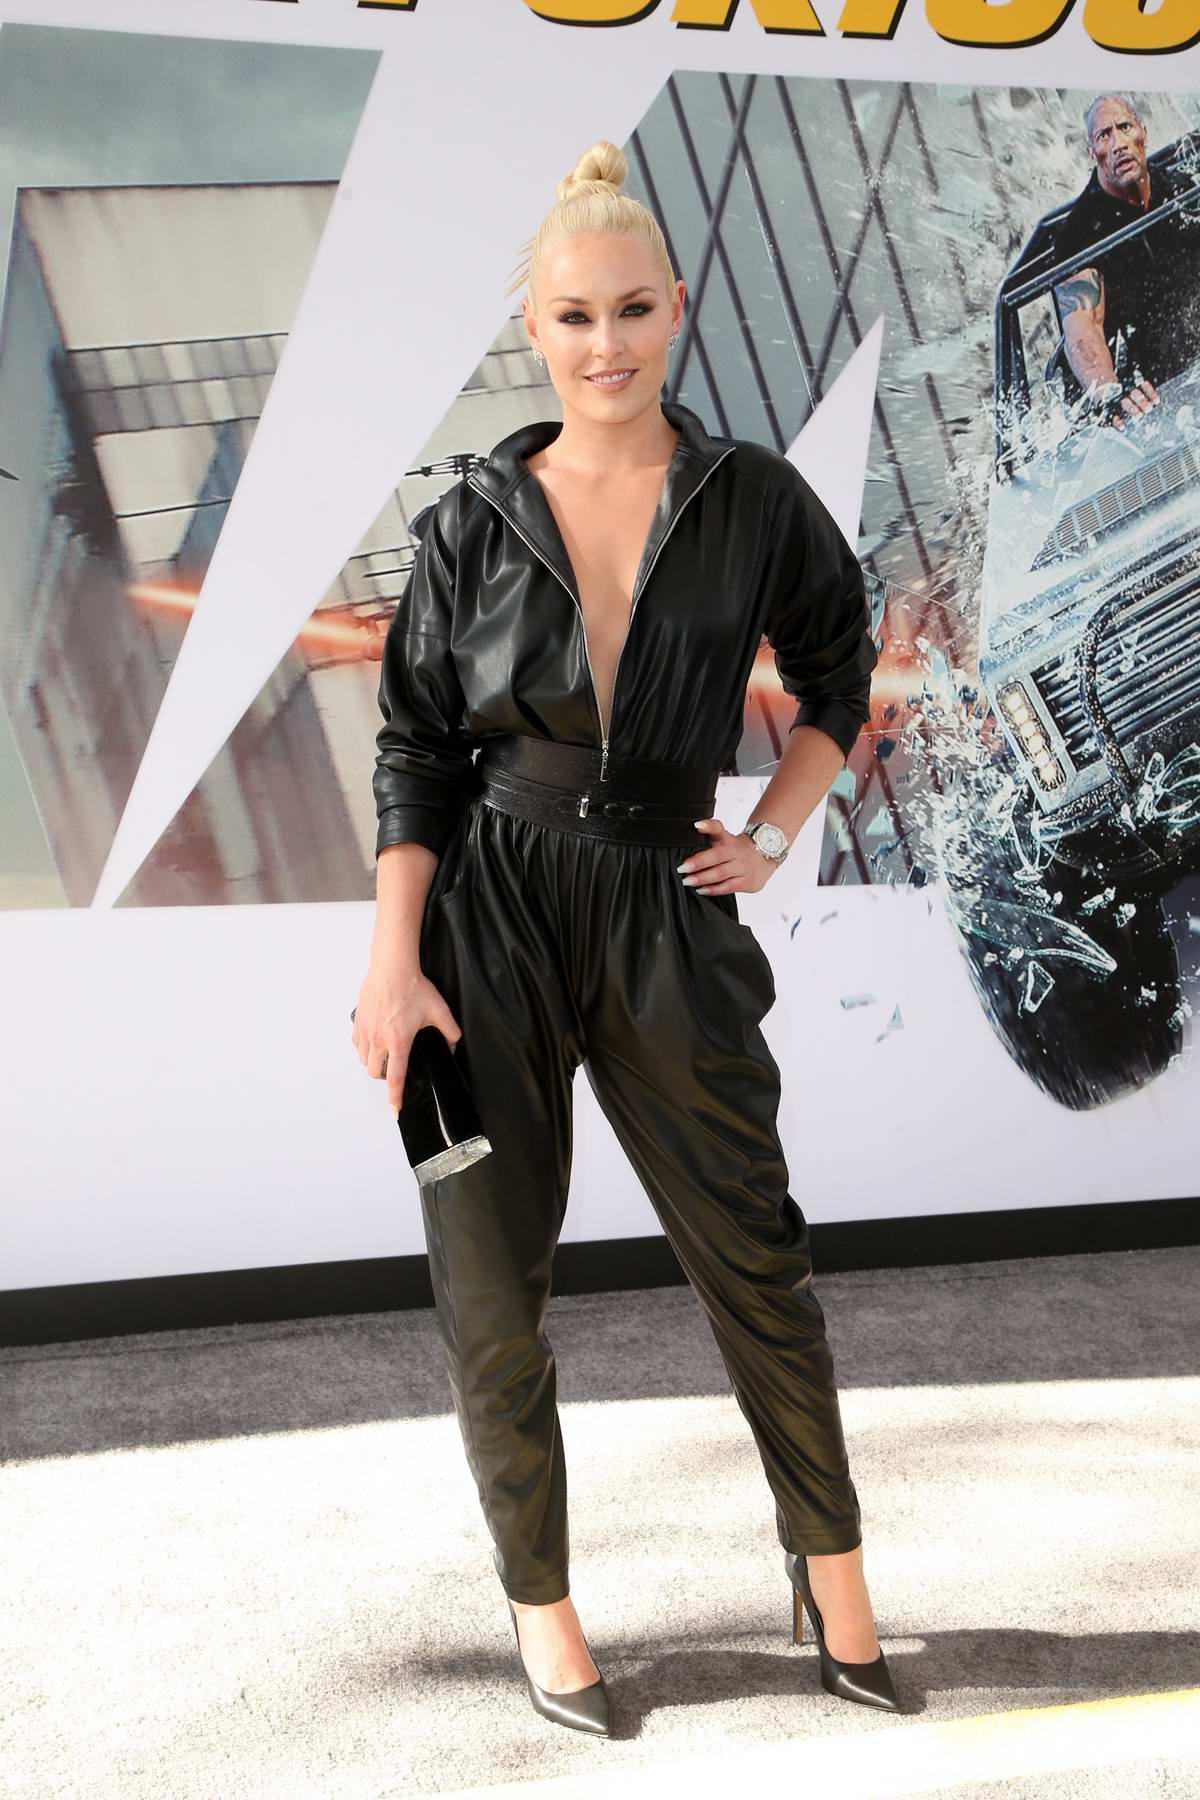 Lindsey Vonn attends the Premiere of 'Fast & Furious Presents: Hobbs & Shaw' at Dolby Theatre in Hollywood, California